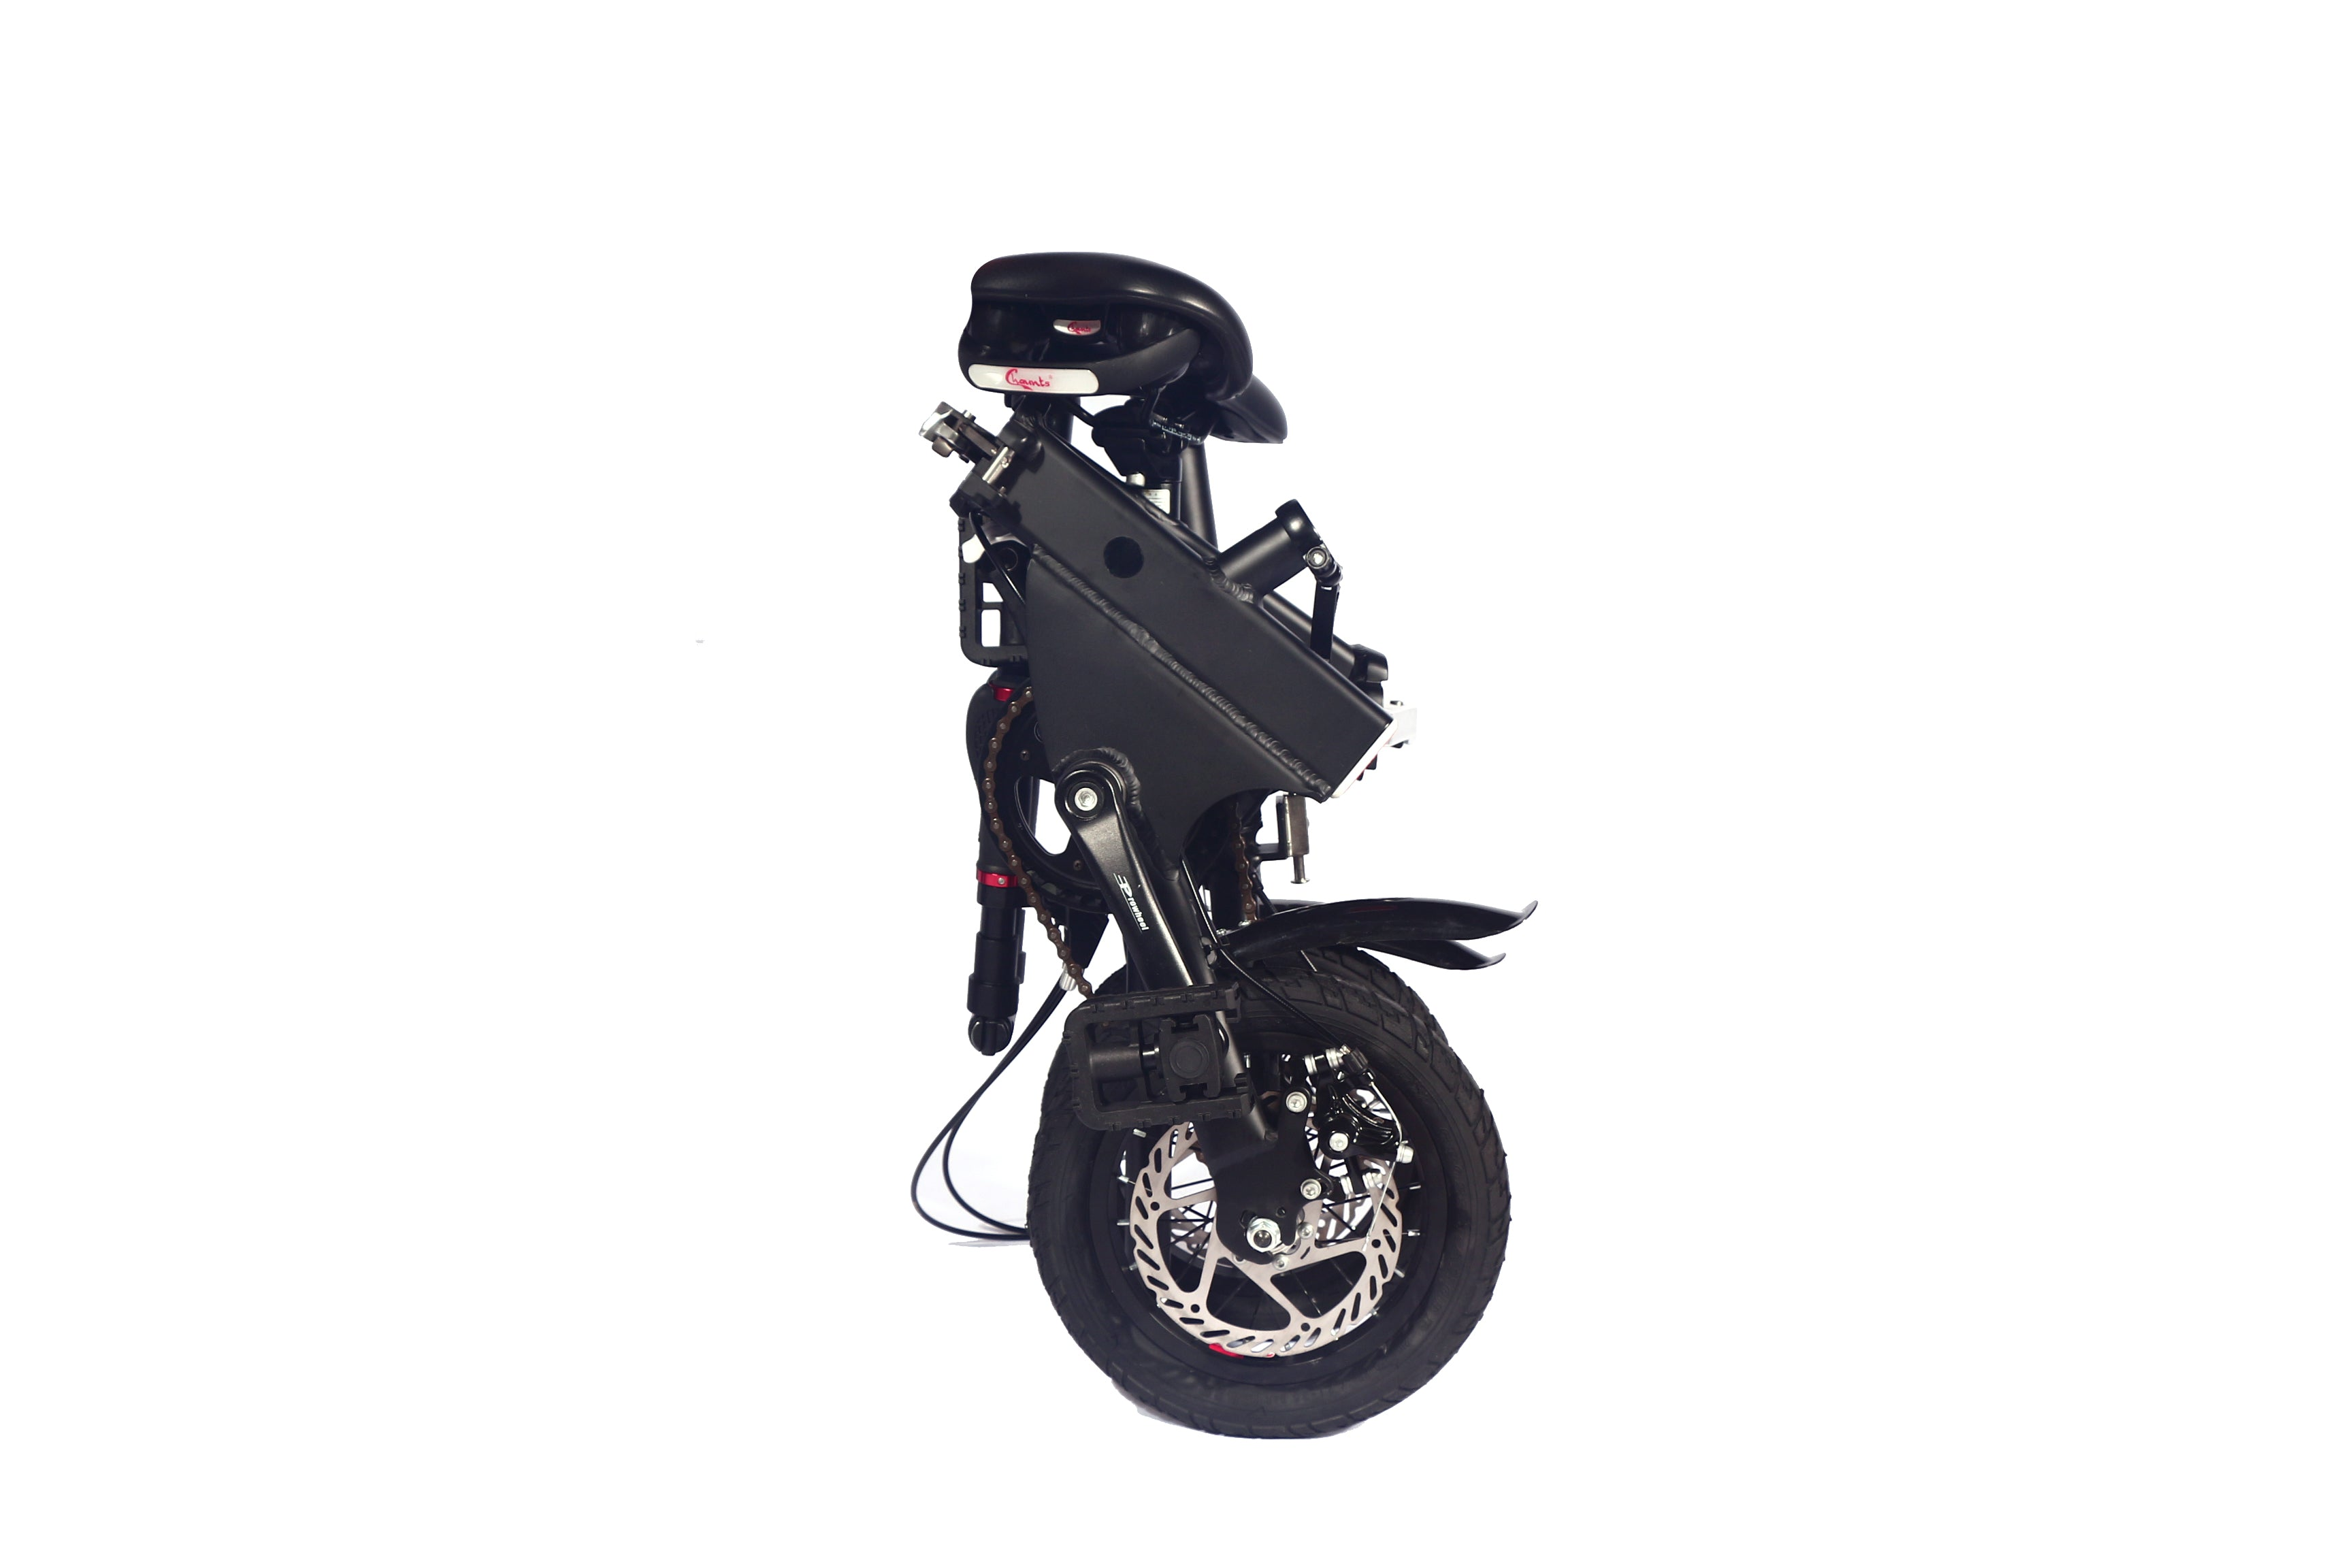 Bike - Most Compact folding bike at discount free shipping by dhl express